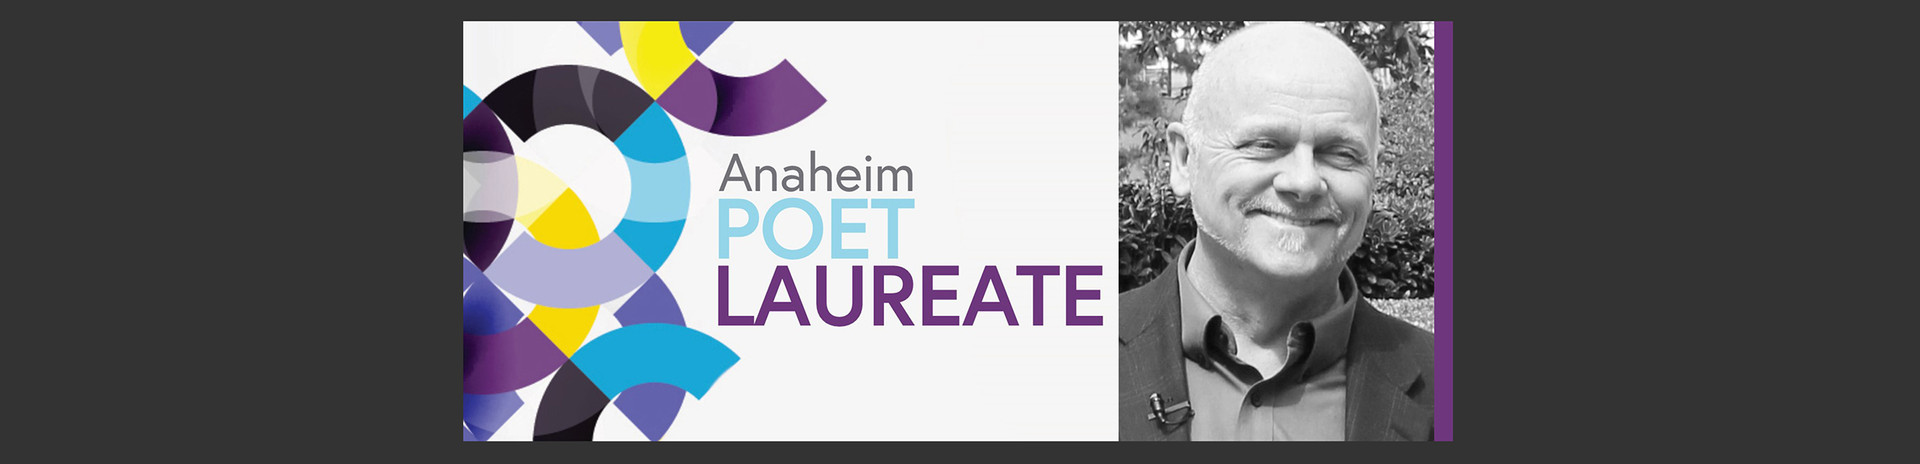 Poet Laureate Logo with Grant Hier